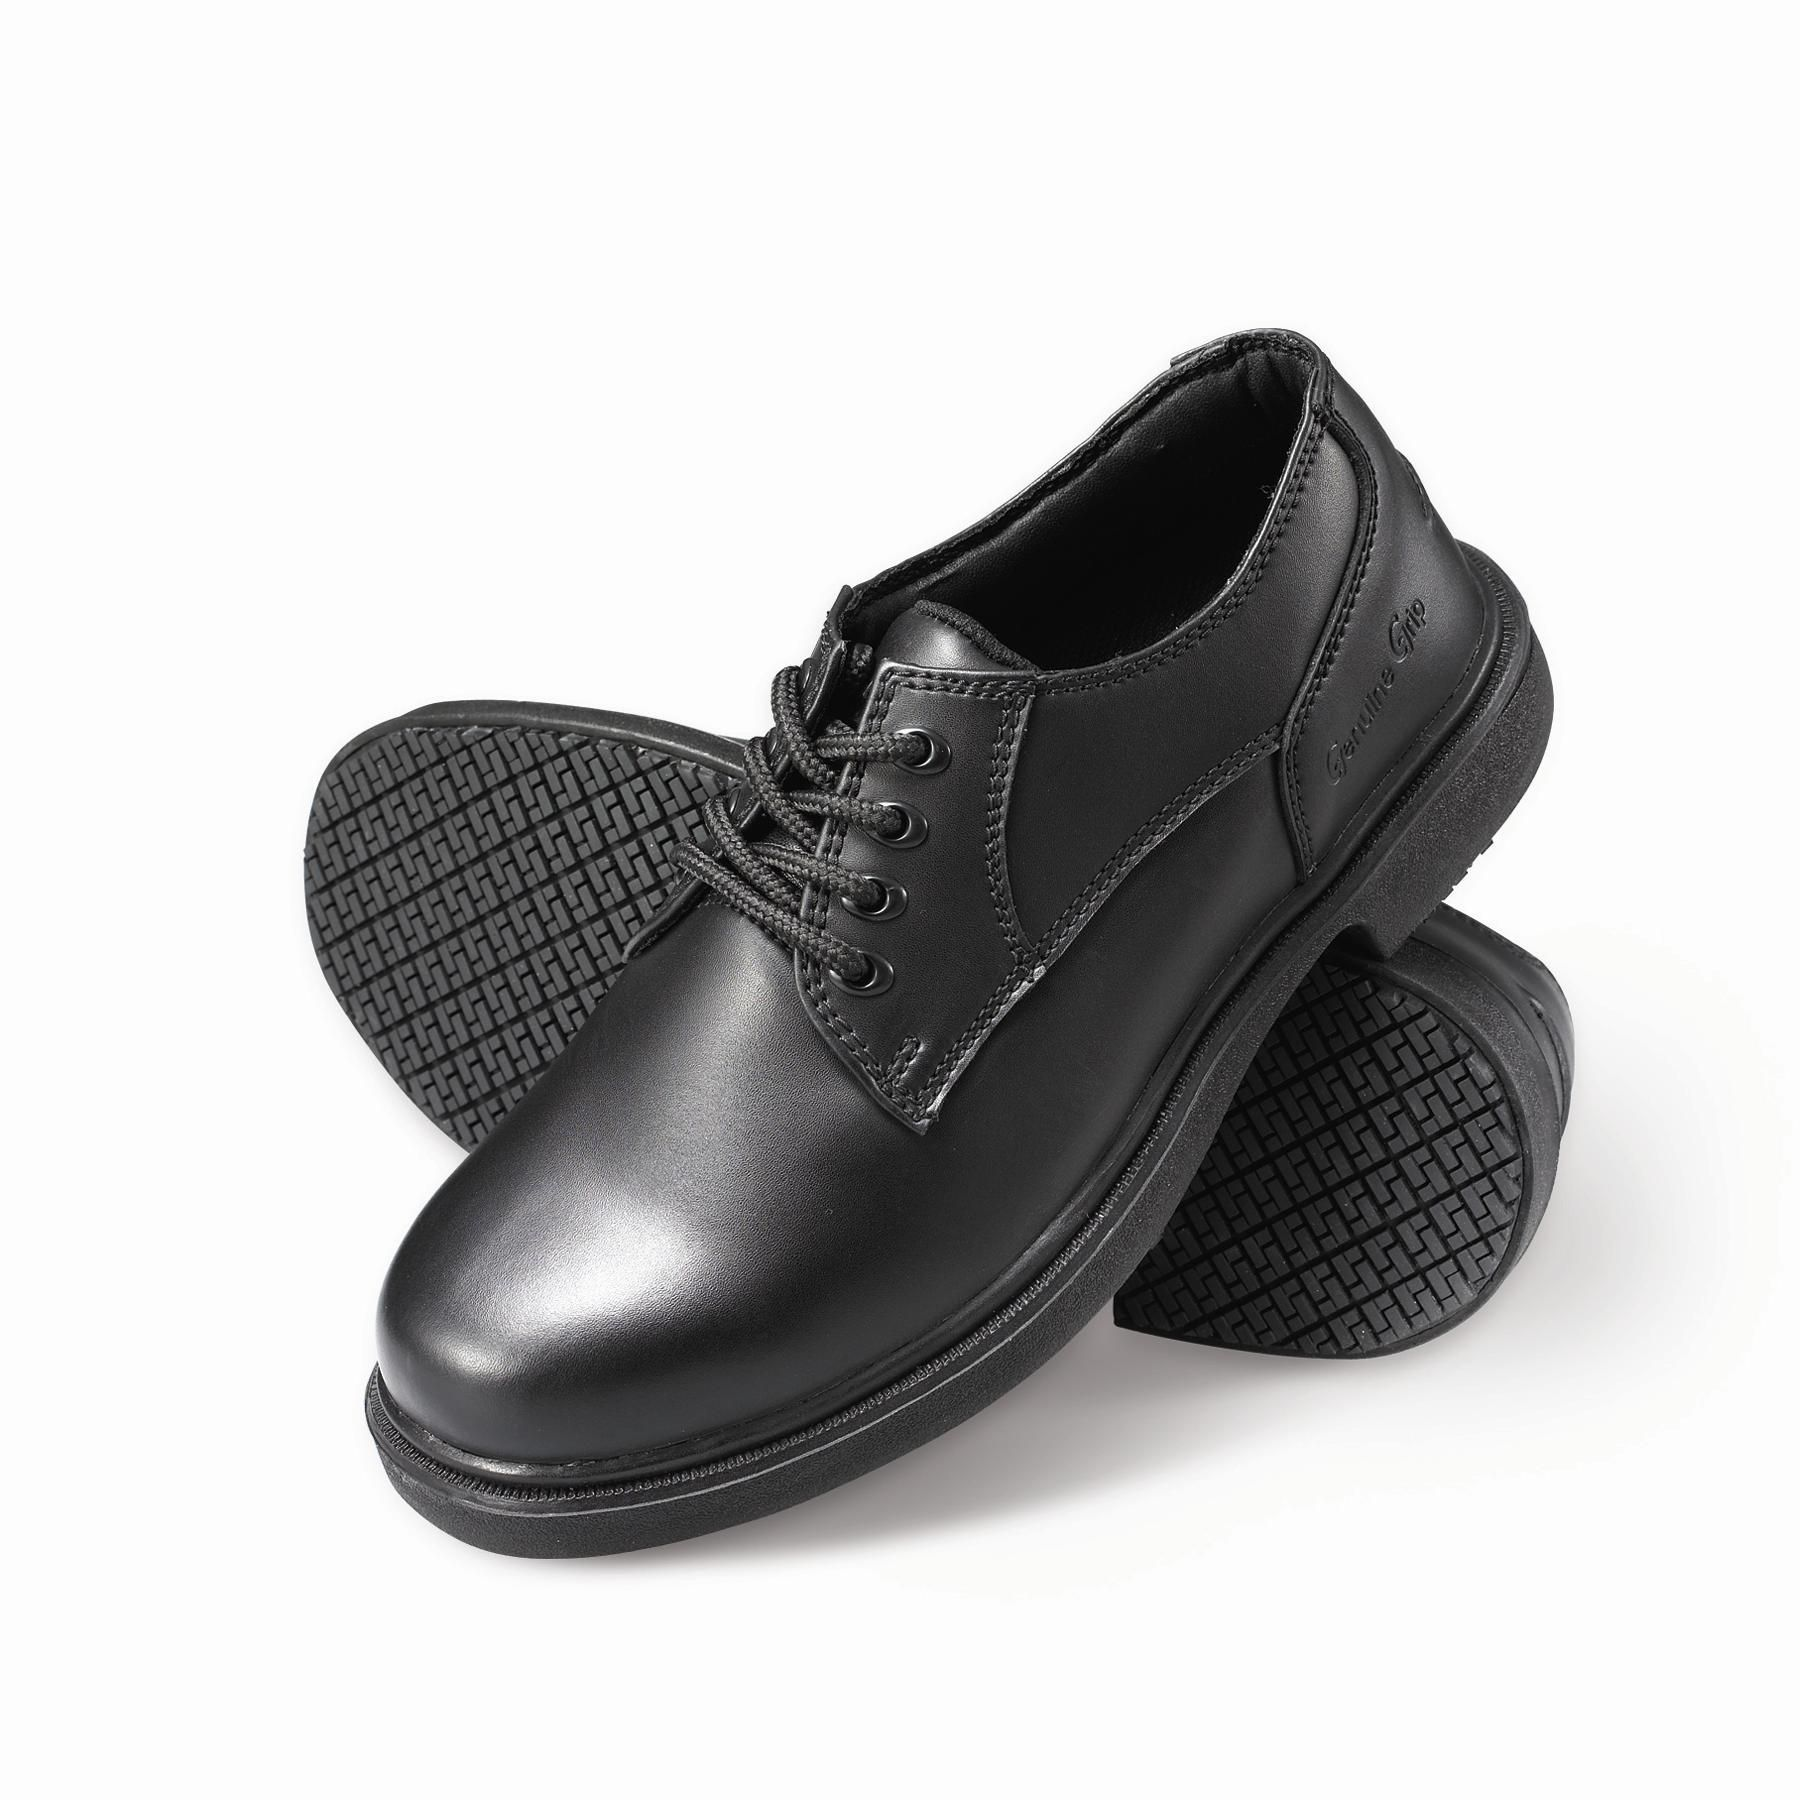 Men's Slip-Resistant Oxfords Work Shoes